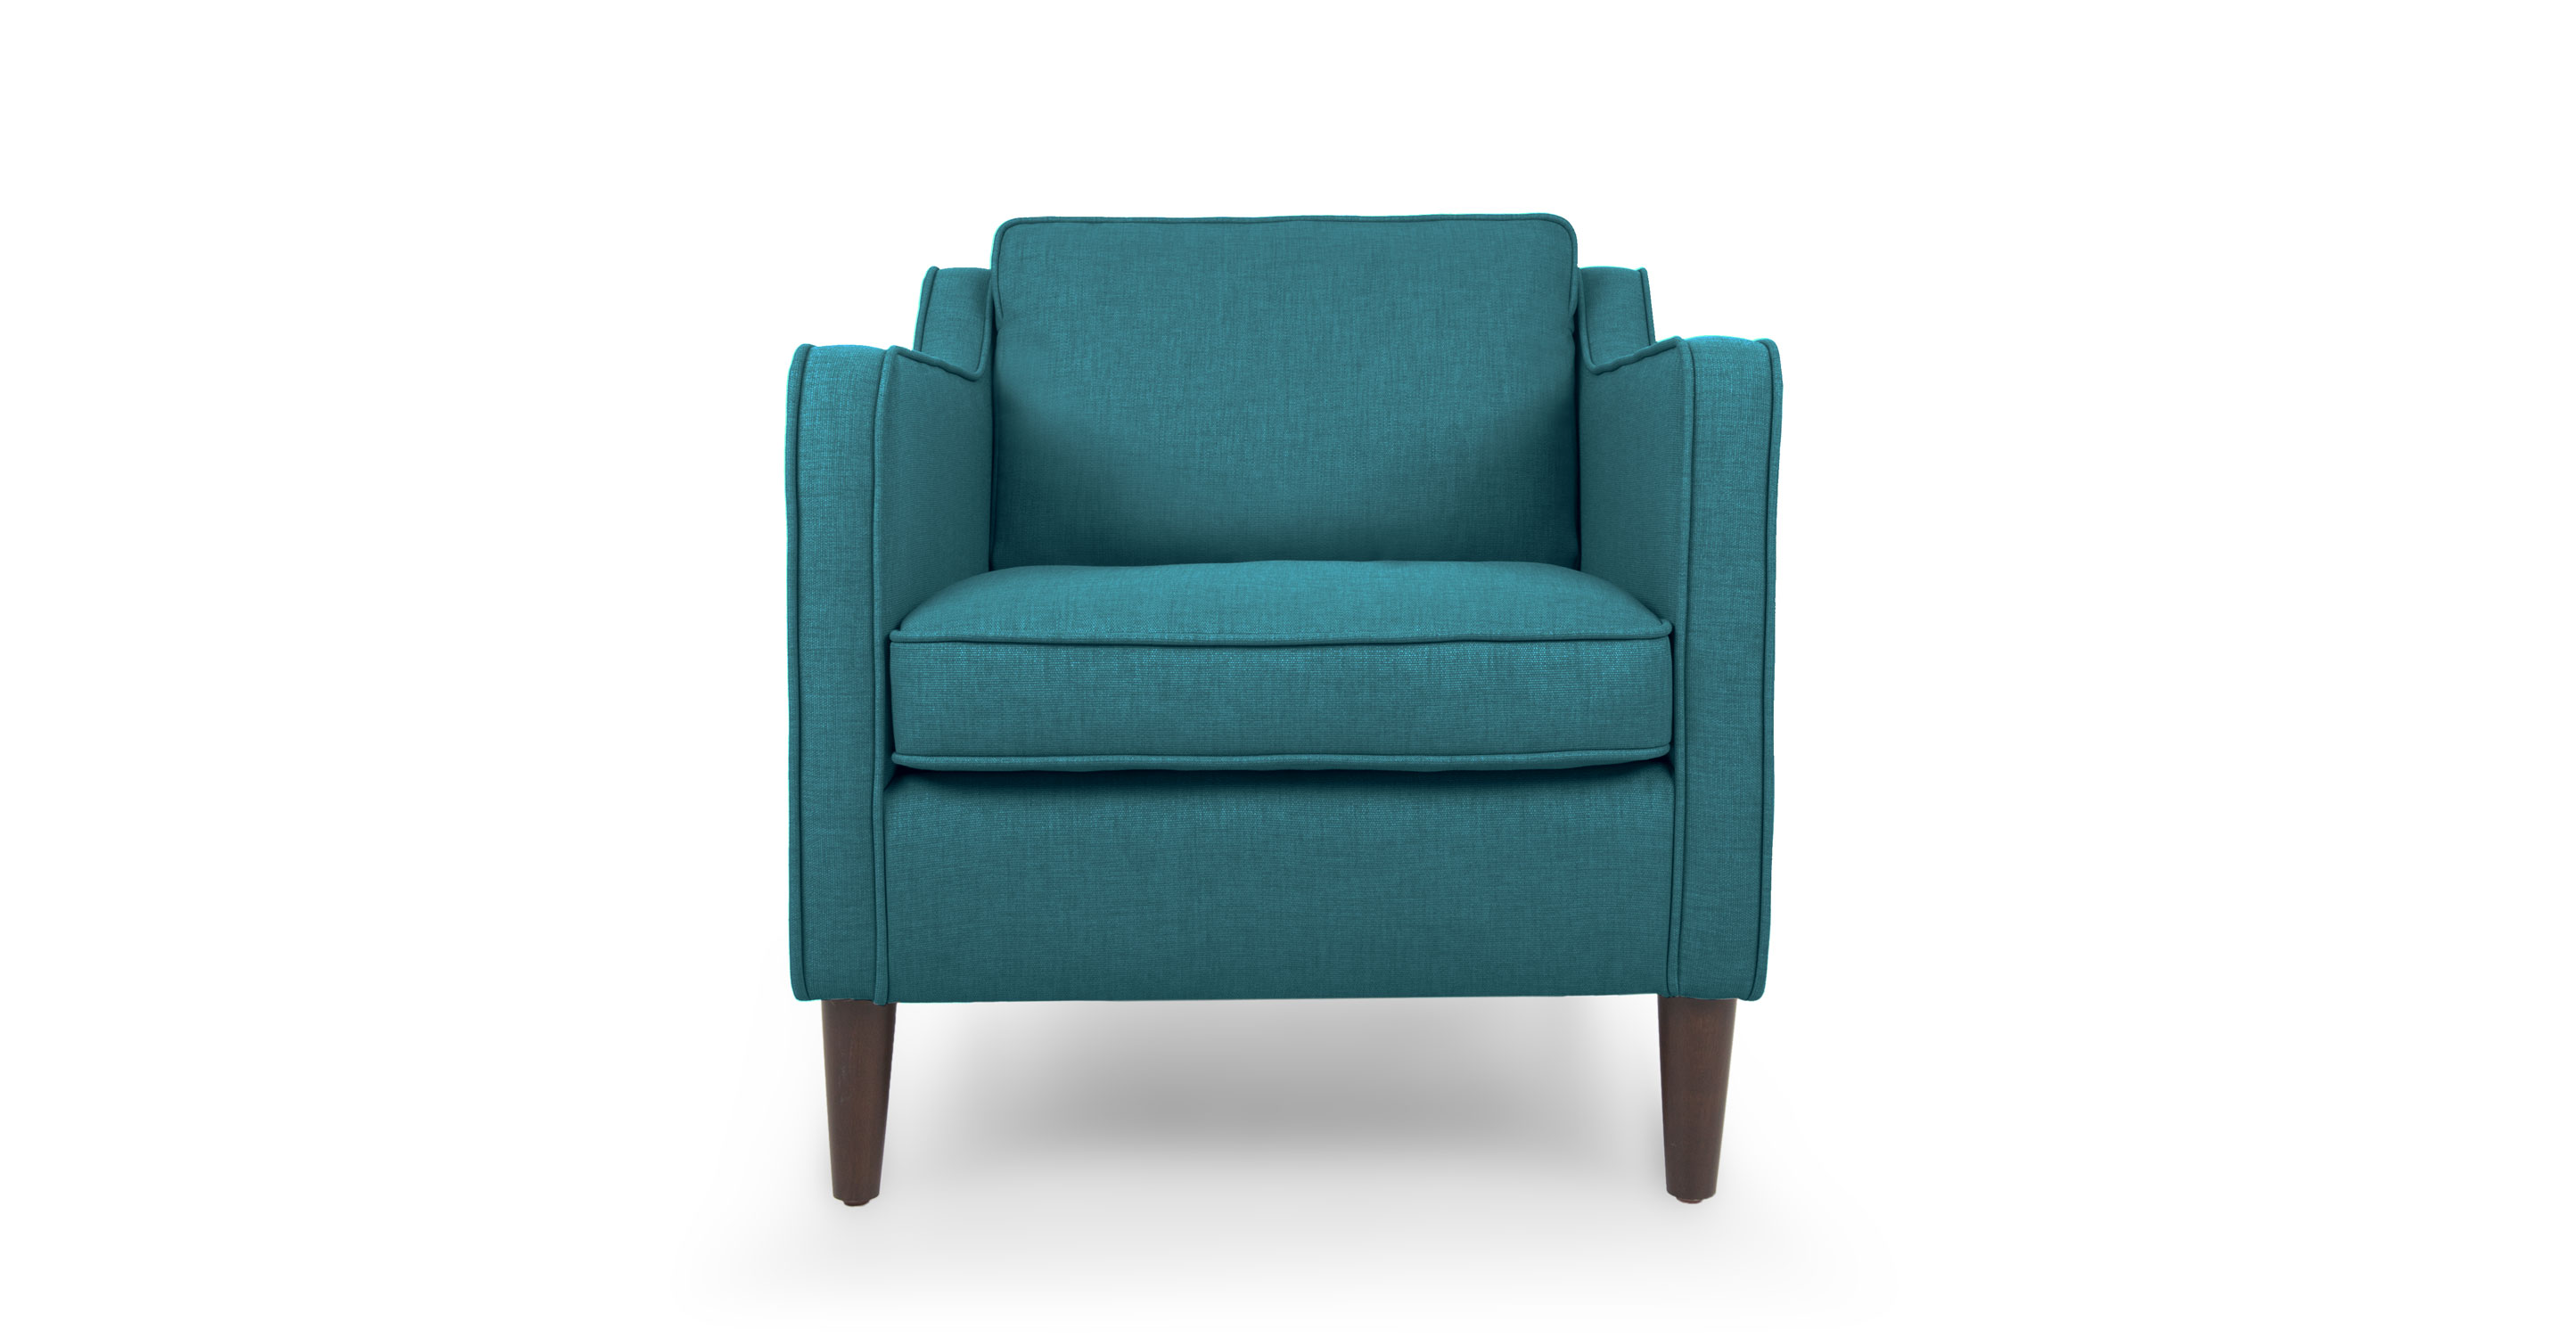 Cherie Ocean Teal Armchair Lounge Chairs Article